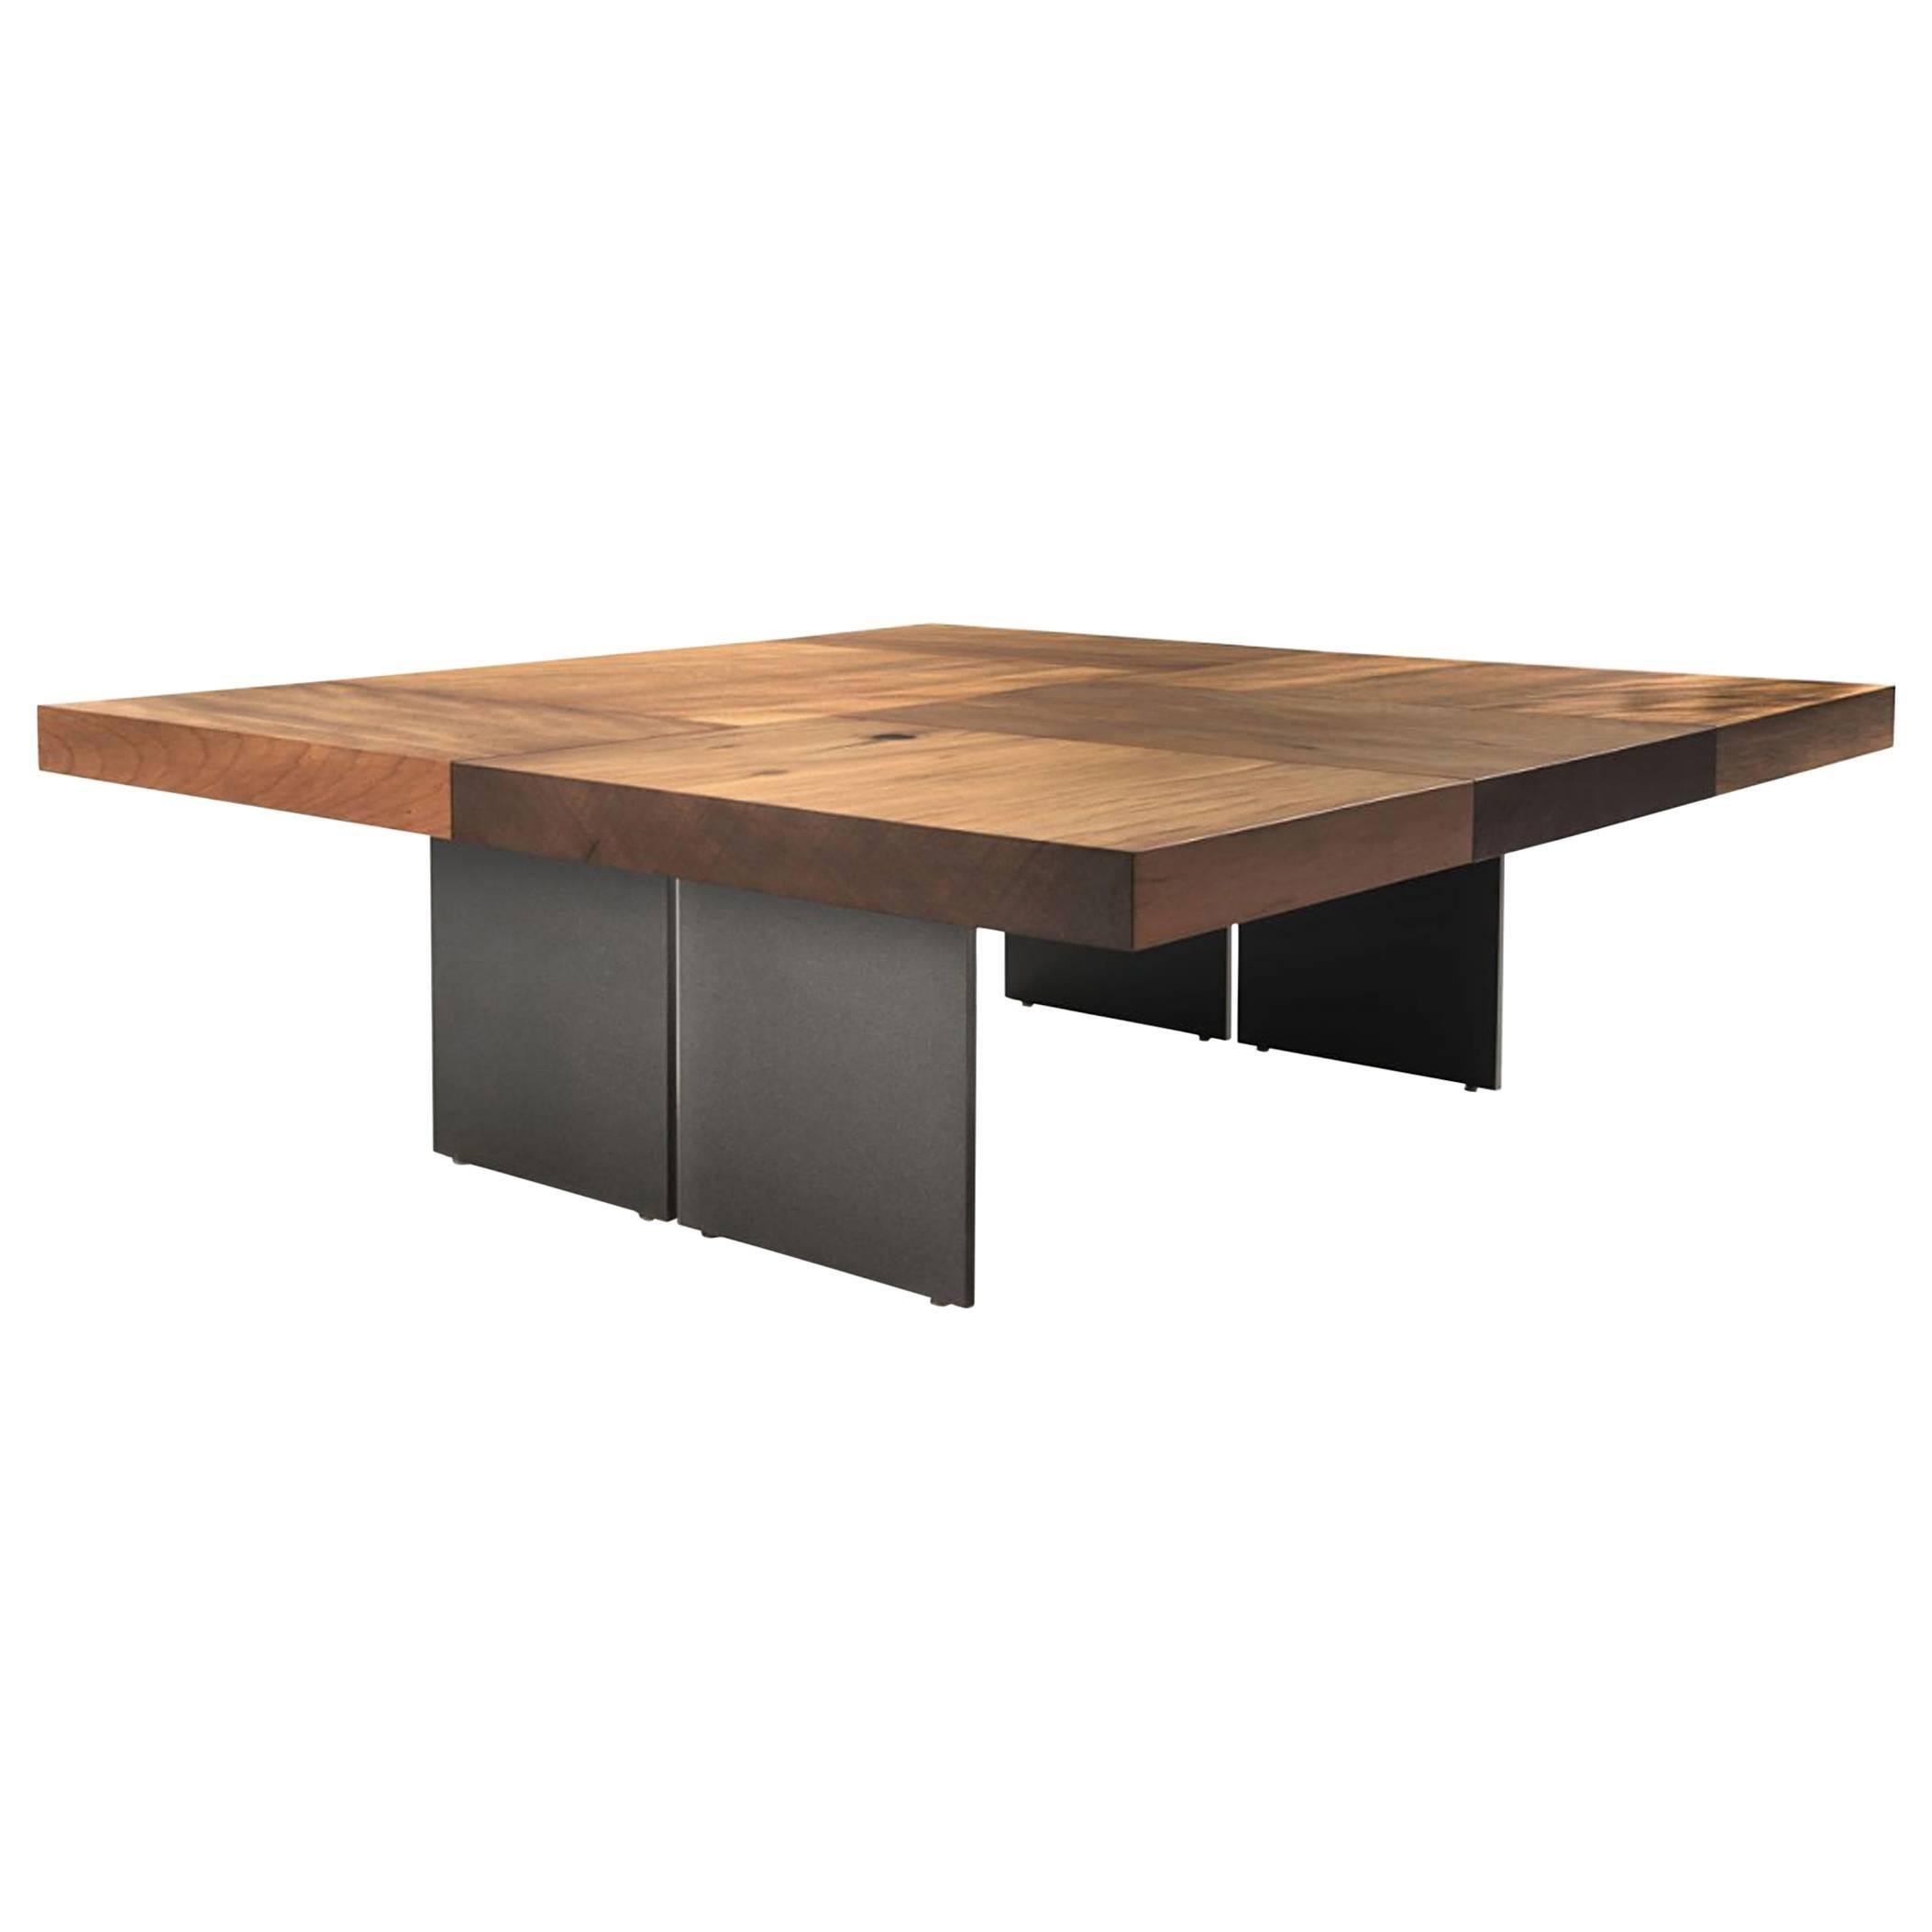 Kauri Wood Coffee Table In Solid Kauri Wood On Oiled Iron Base For Sale At  1stdibs